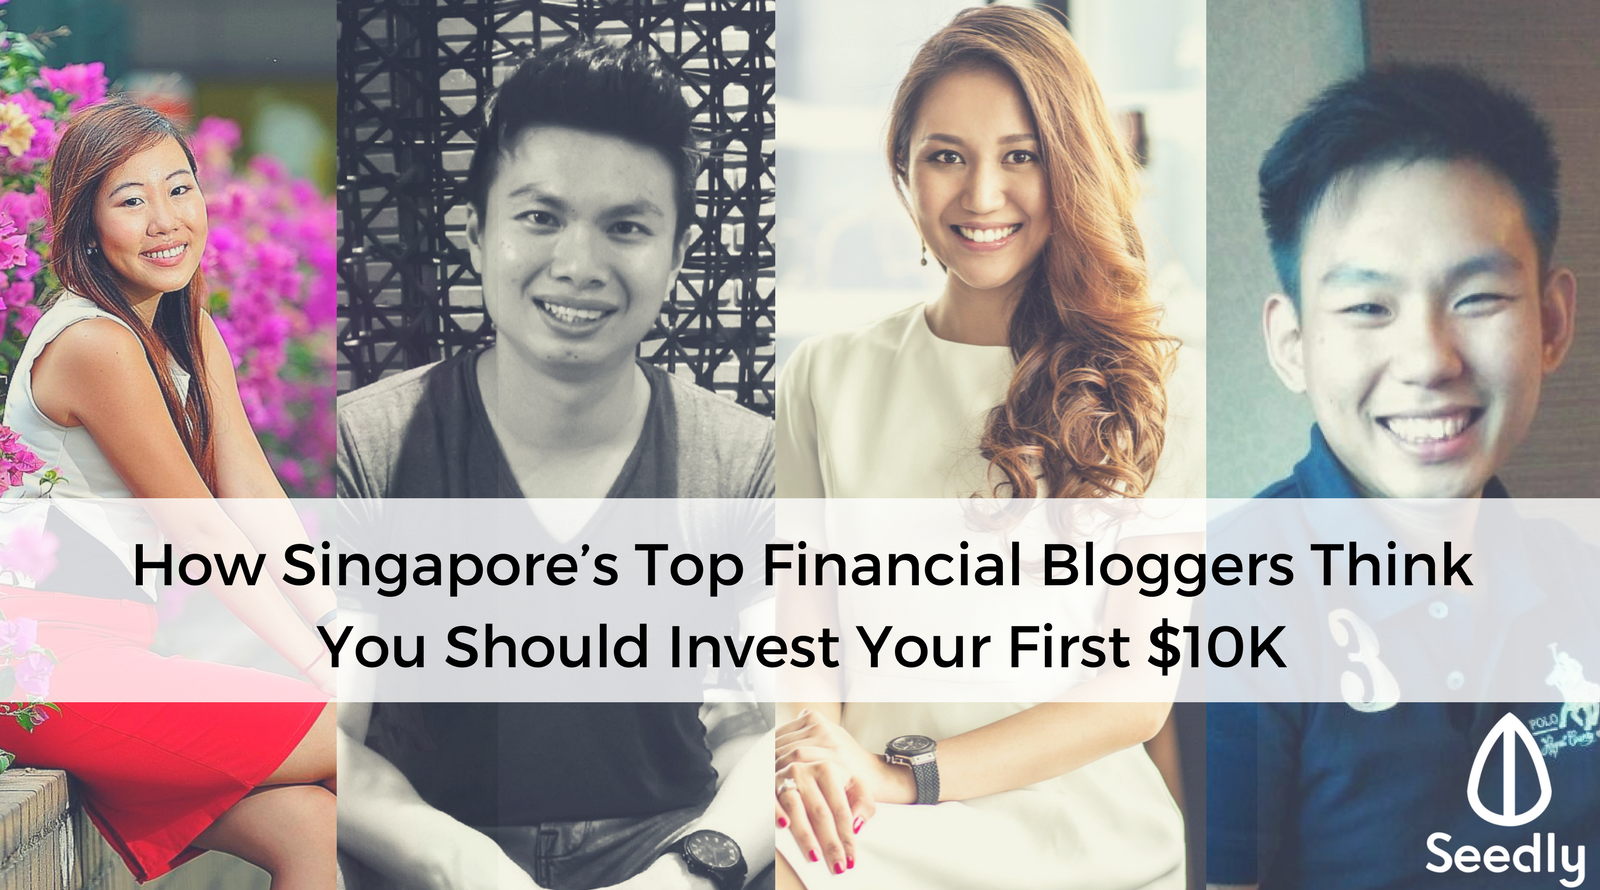 How Will Some Of Singapore's Top Financial Bloggers Invest Their First $10K